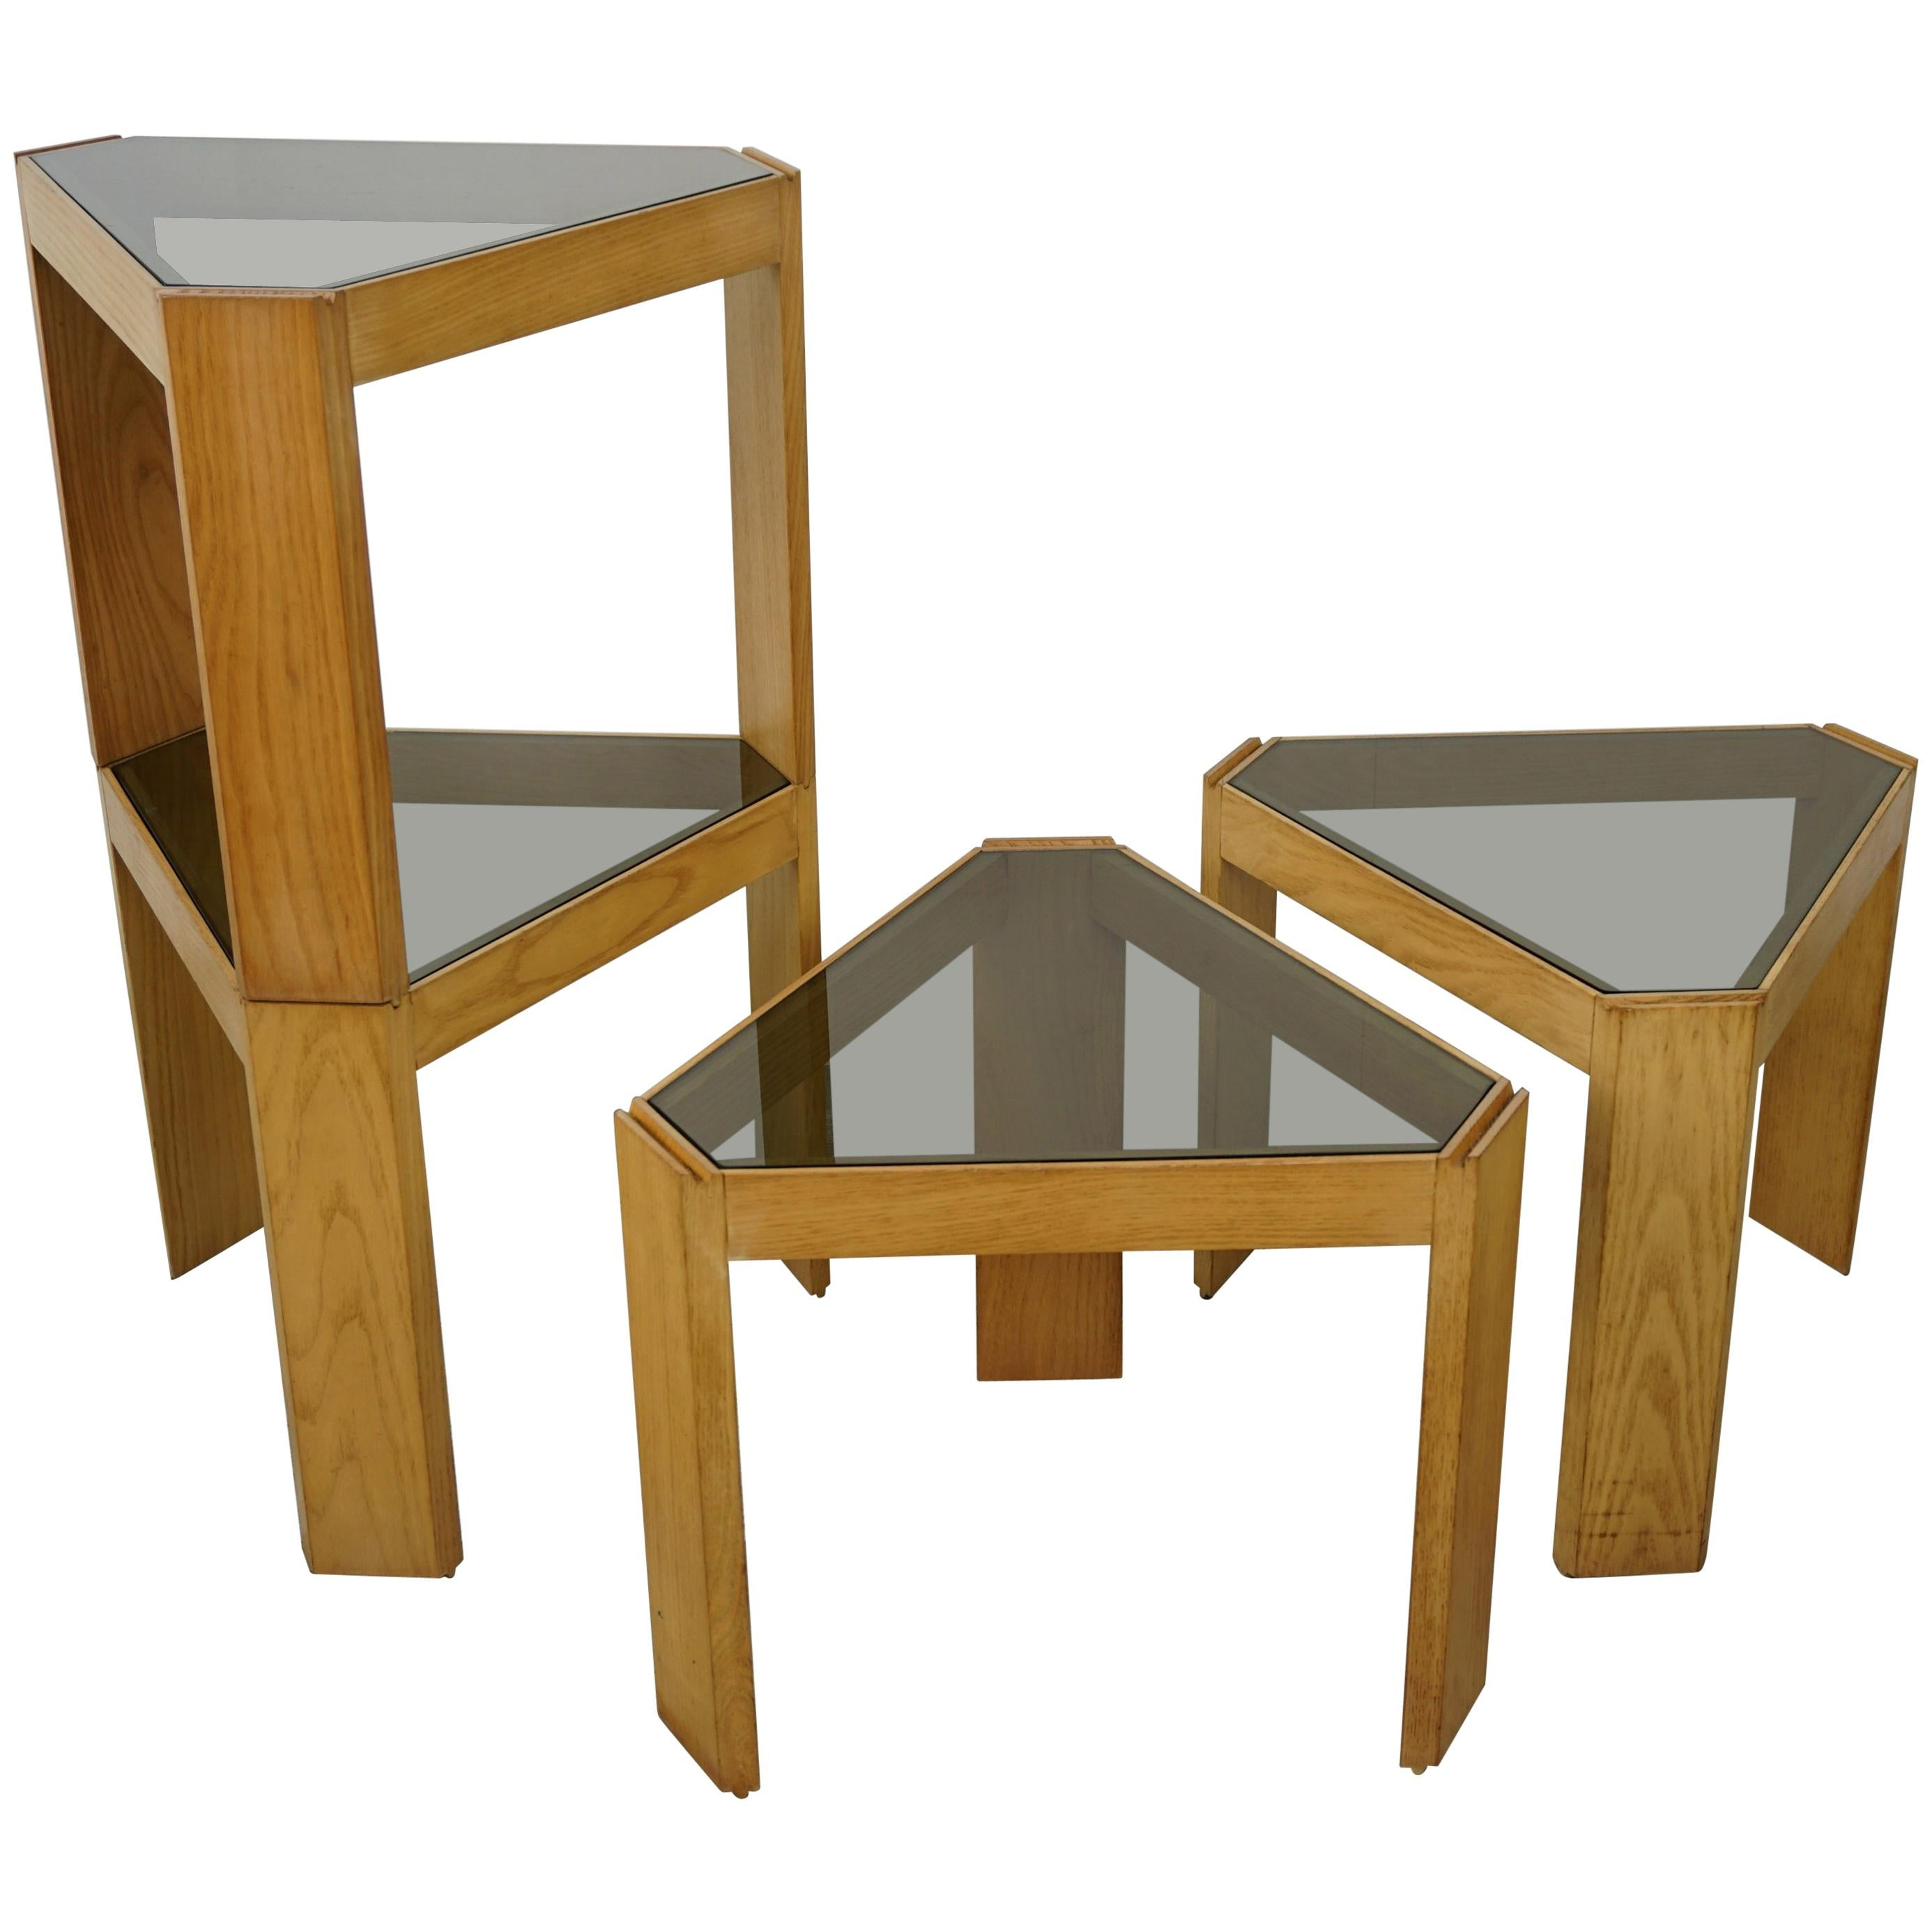 1970s Italian Design Set Of 4 Modular Tables From Porada Arredi For Sale At  1stdibs